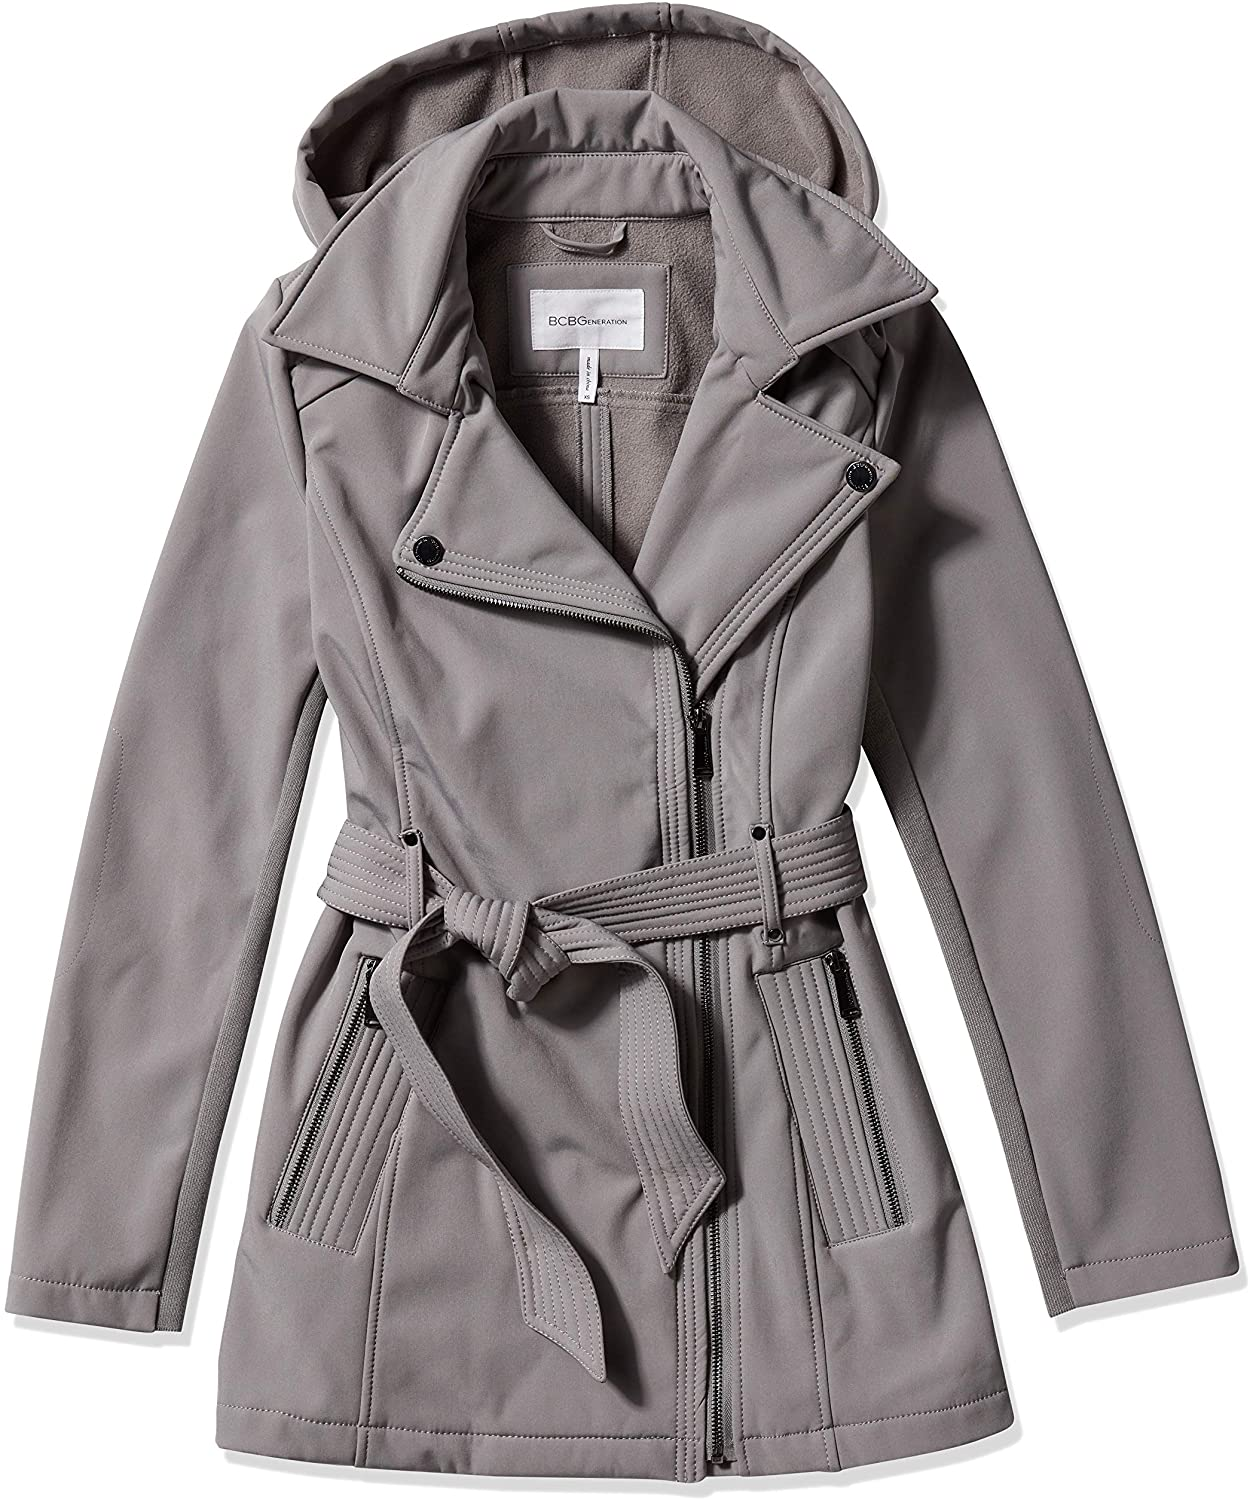 BCBGeneration Women's Asymmetrical Zip Belted Soft-Shell Coat with Hood